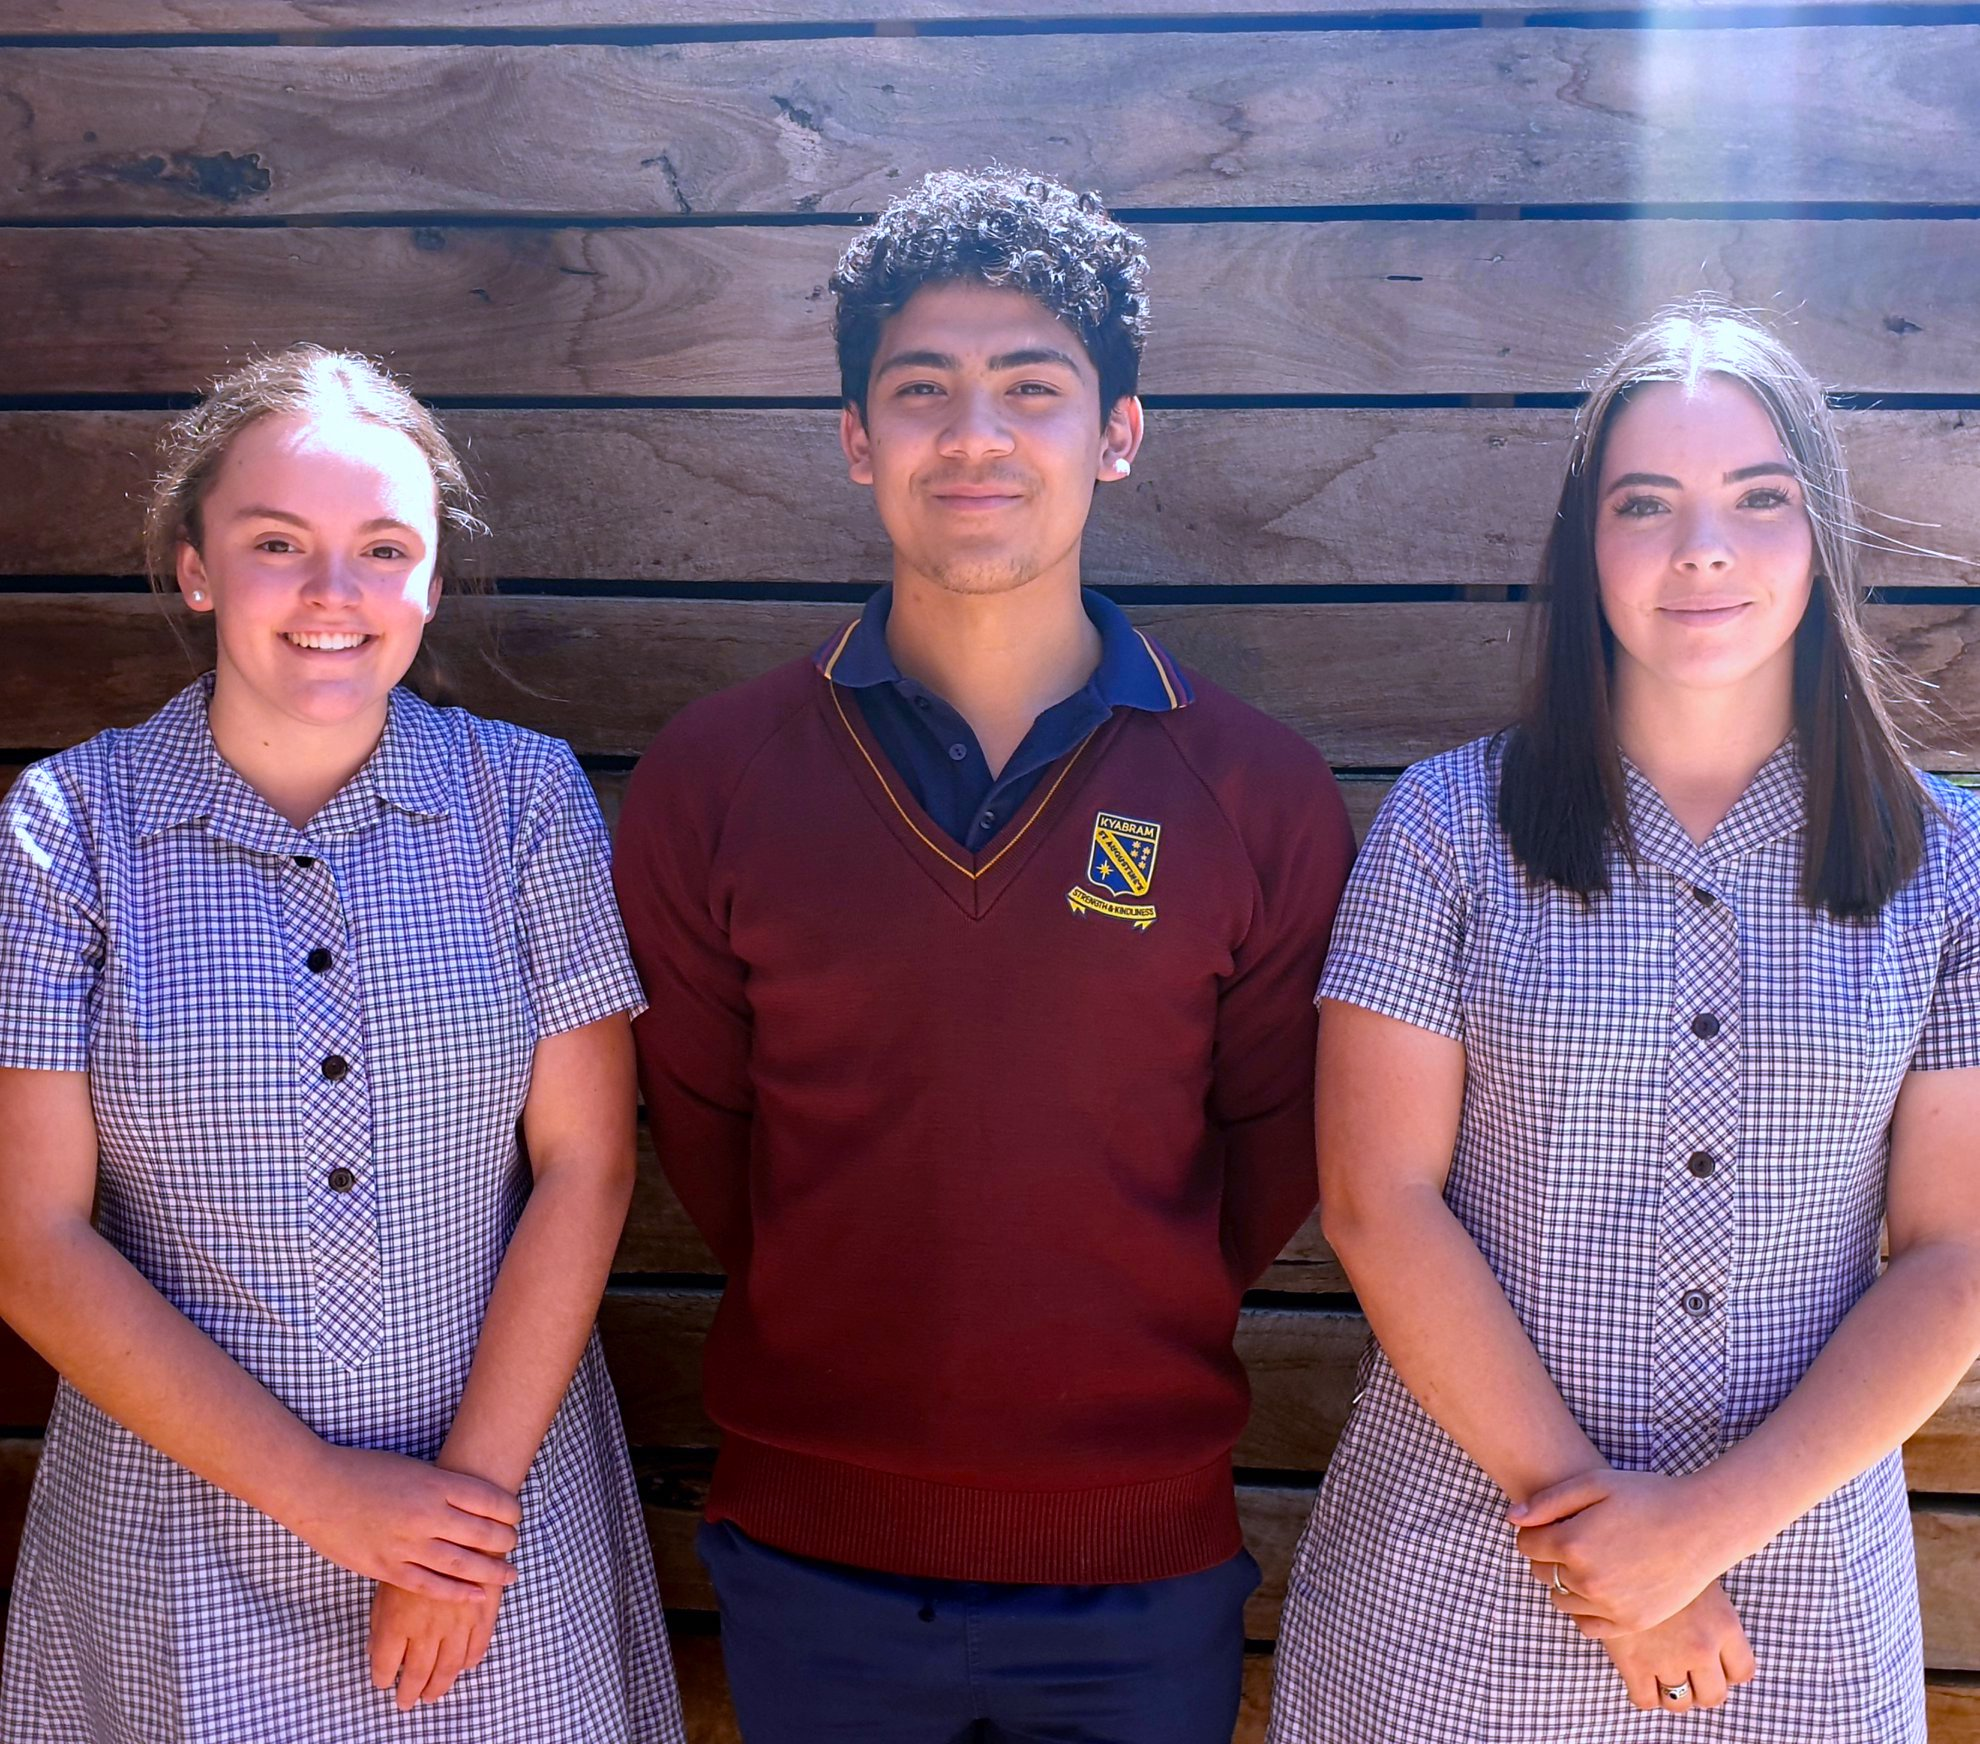 School captains 2020